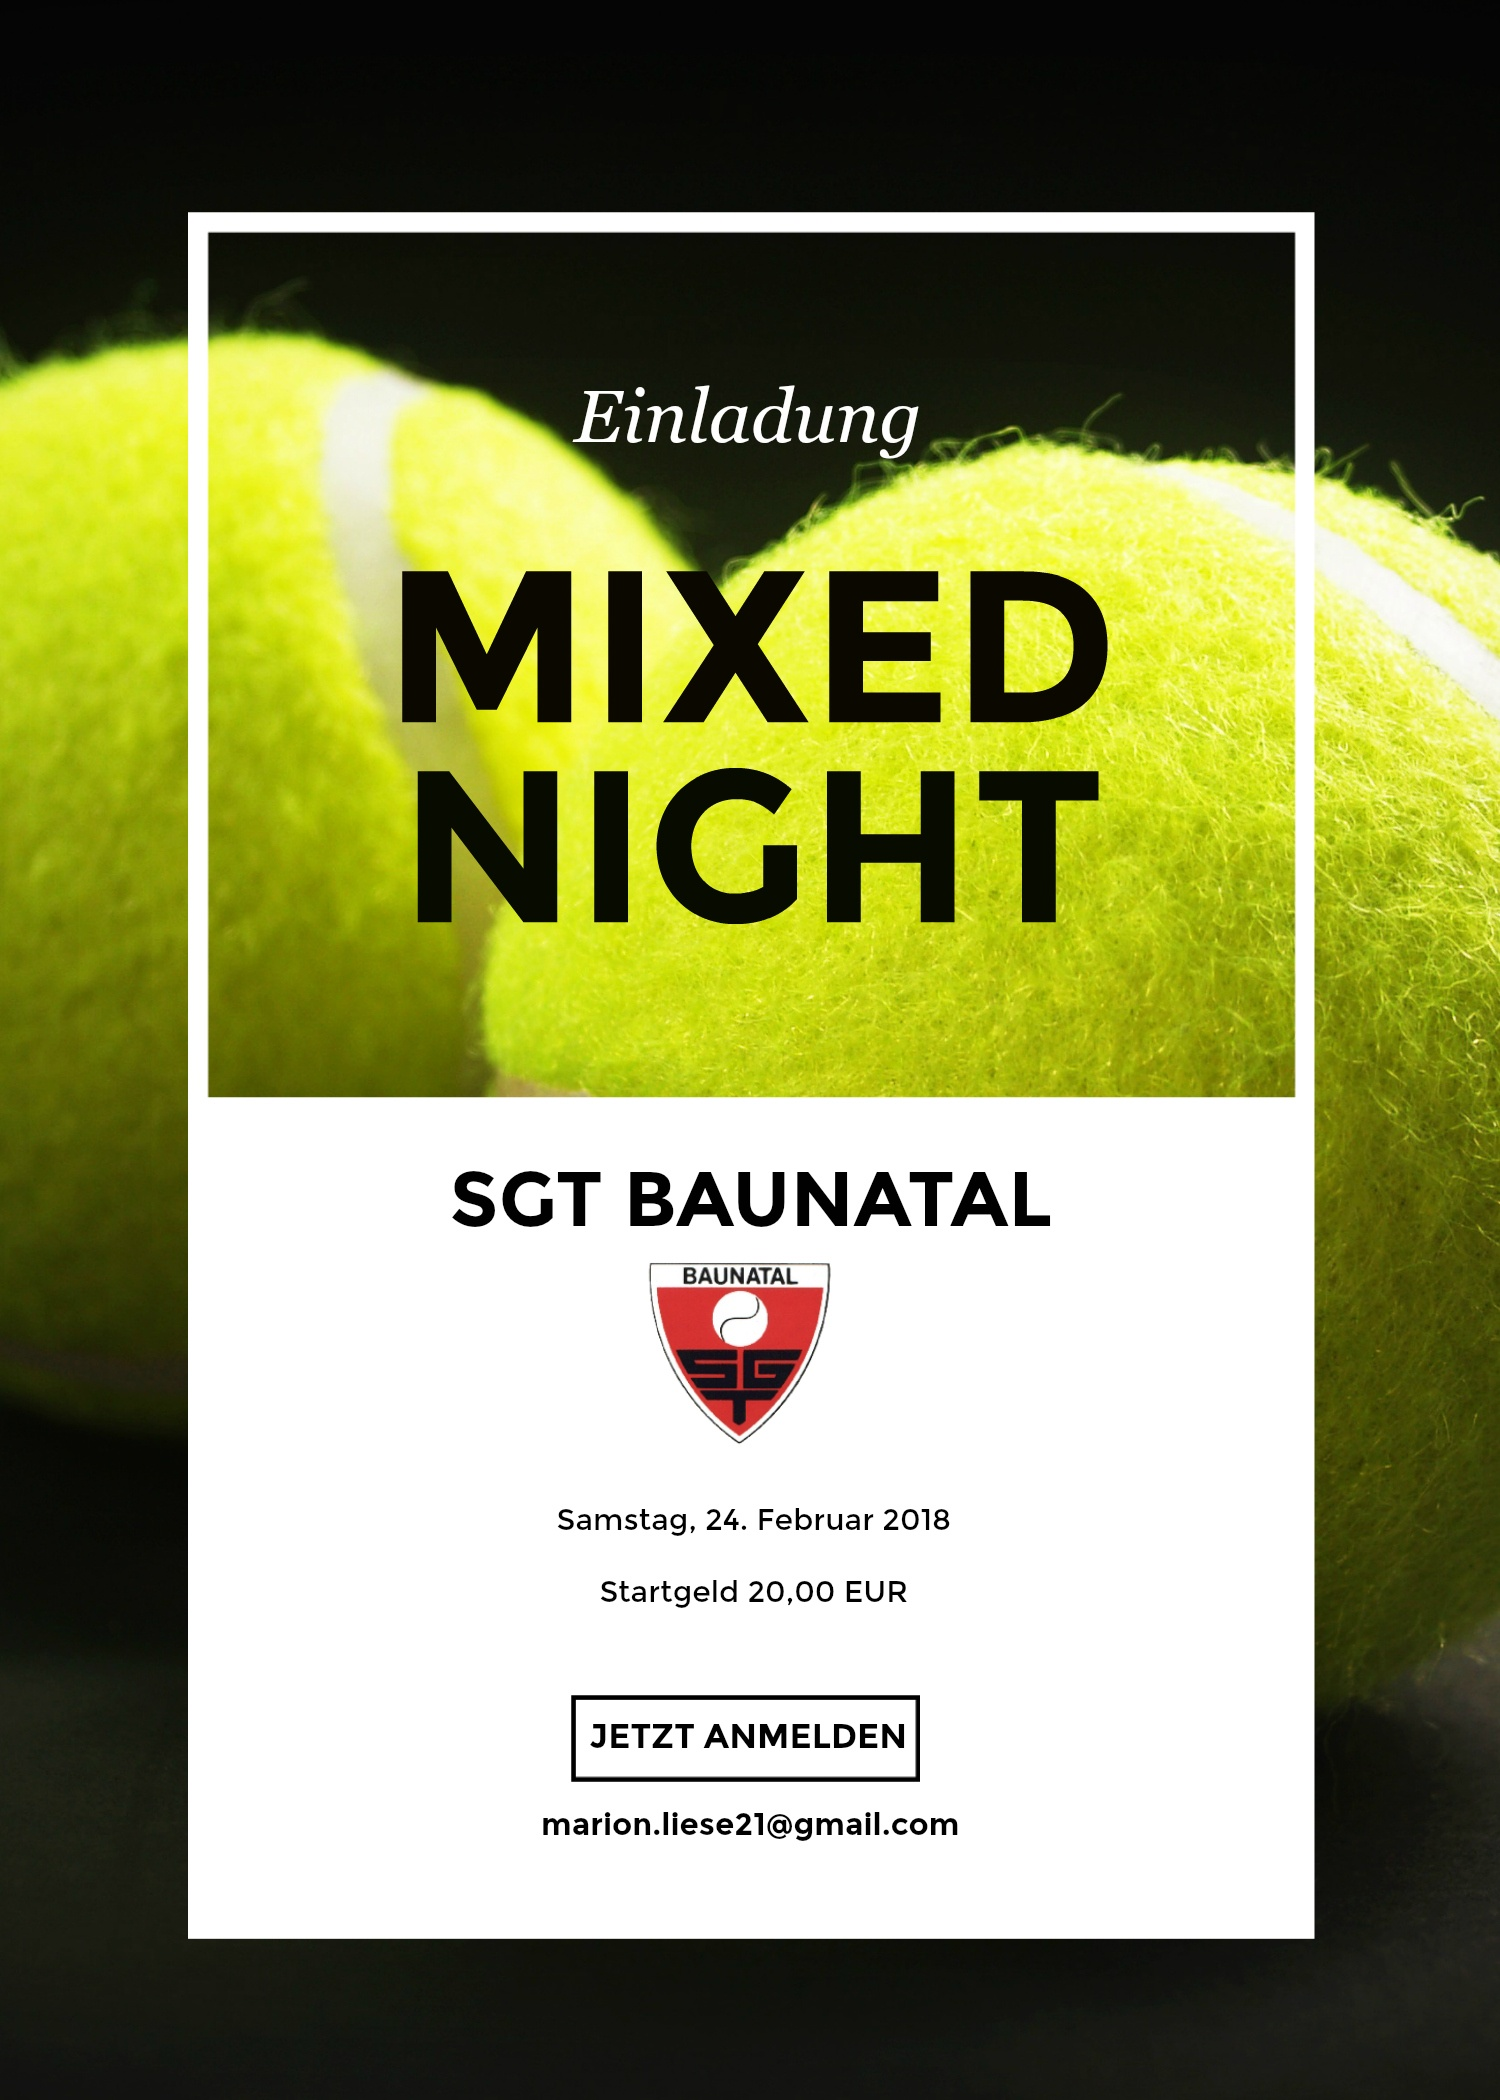 Einladung zur Mixed-Night